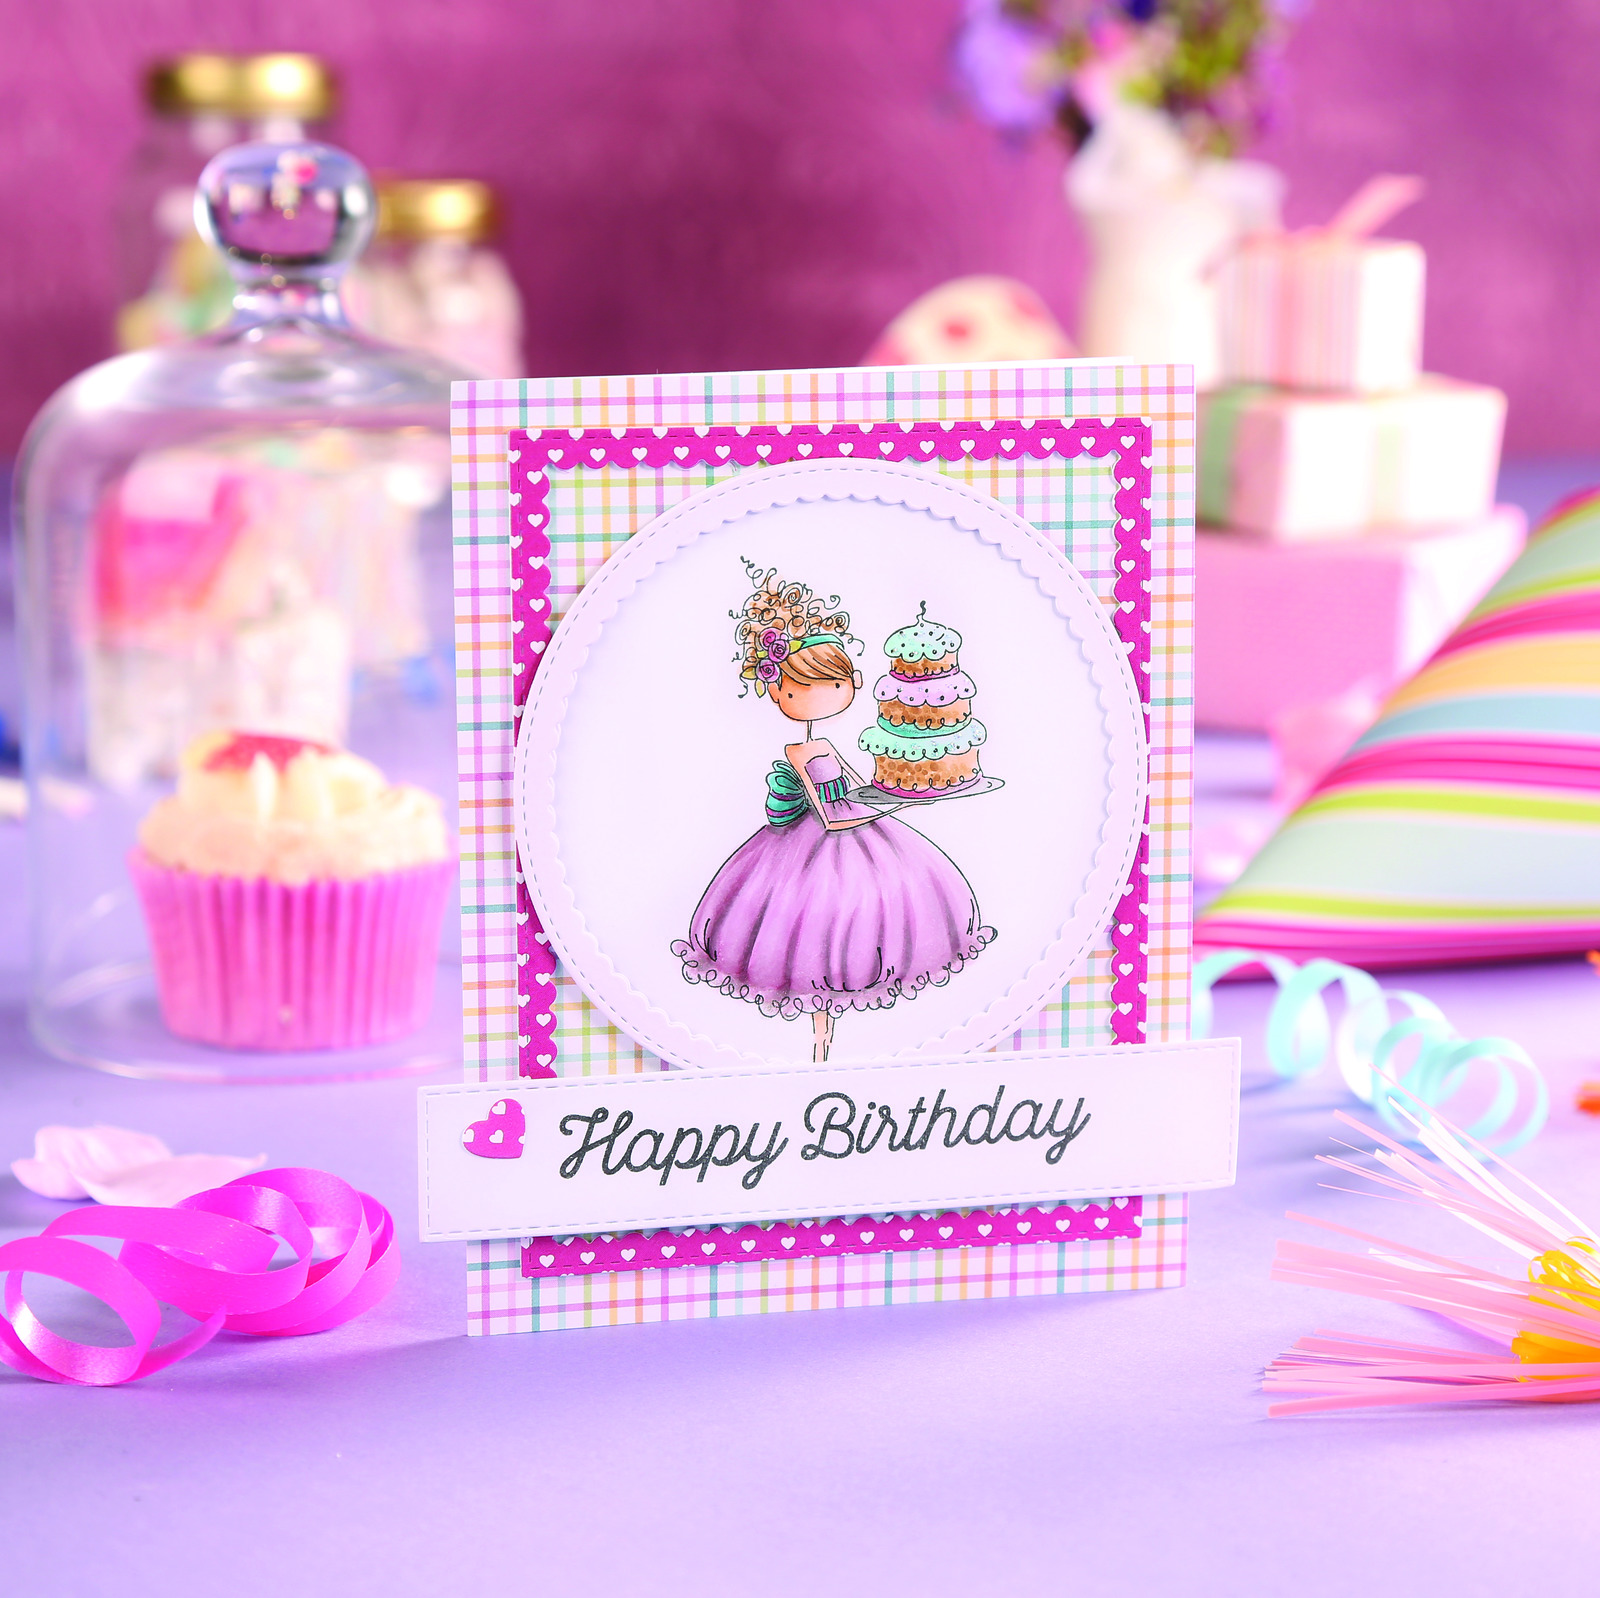 Super Happy Birthday Sweet Girly Birthday Cake Framed Panel Card Personalised Birthday Cards Beptaeletsinfo